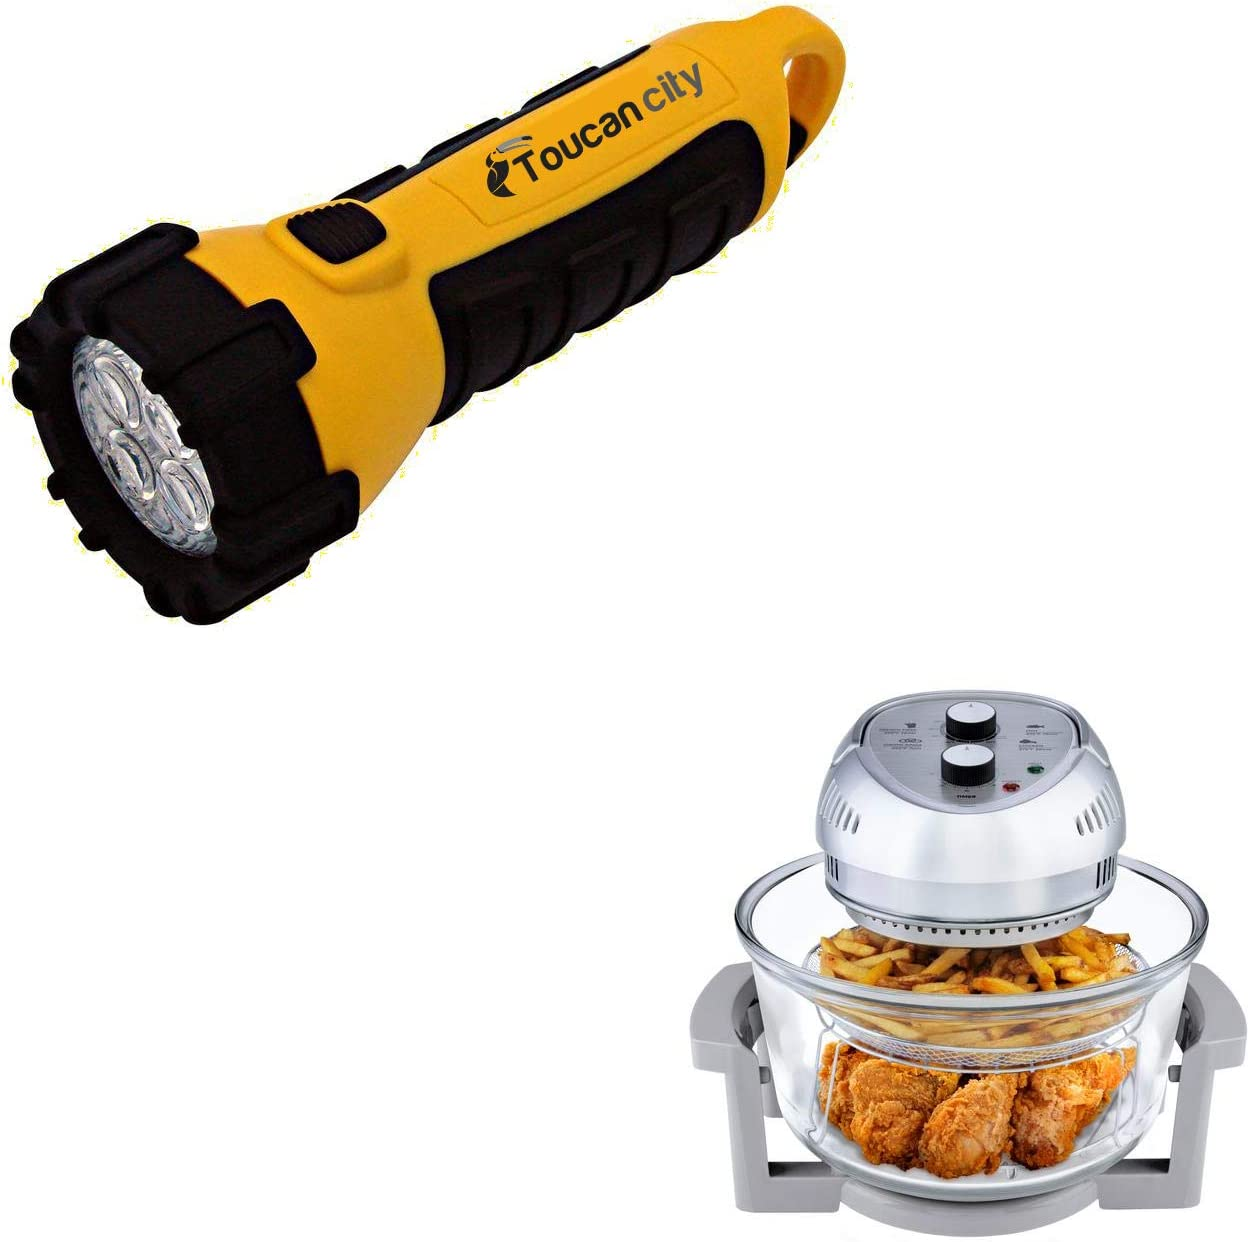 Toucan City LED Flashlight and Big Boss 16 Qt. Silver Oil-less Air r with Built-In Timer 8605